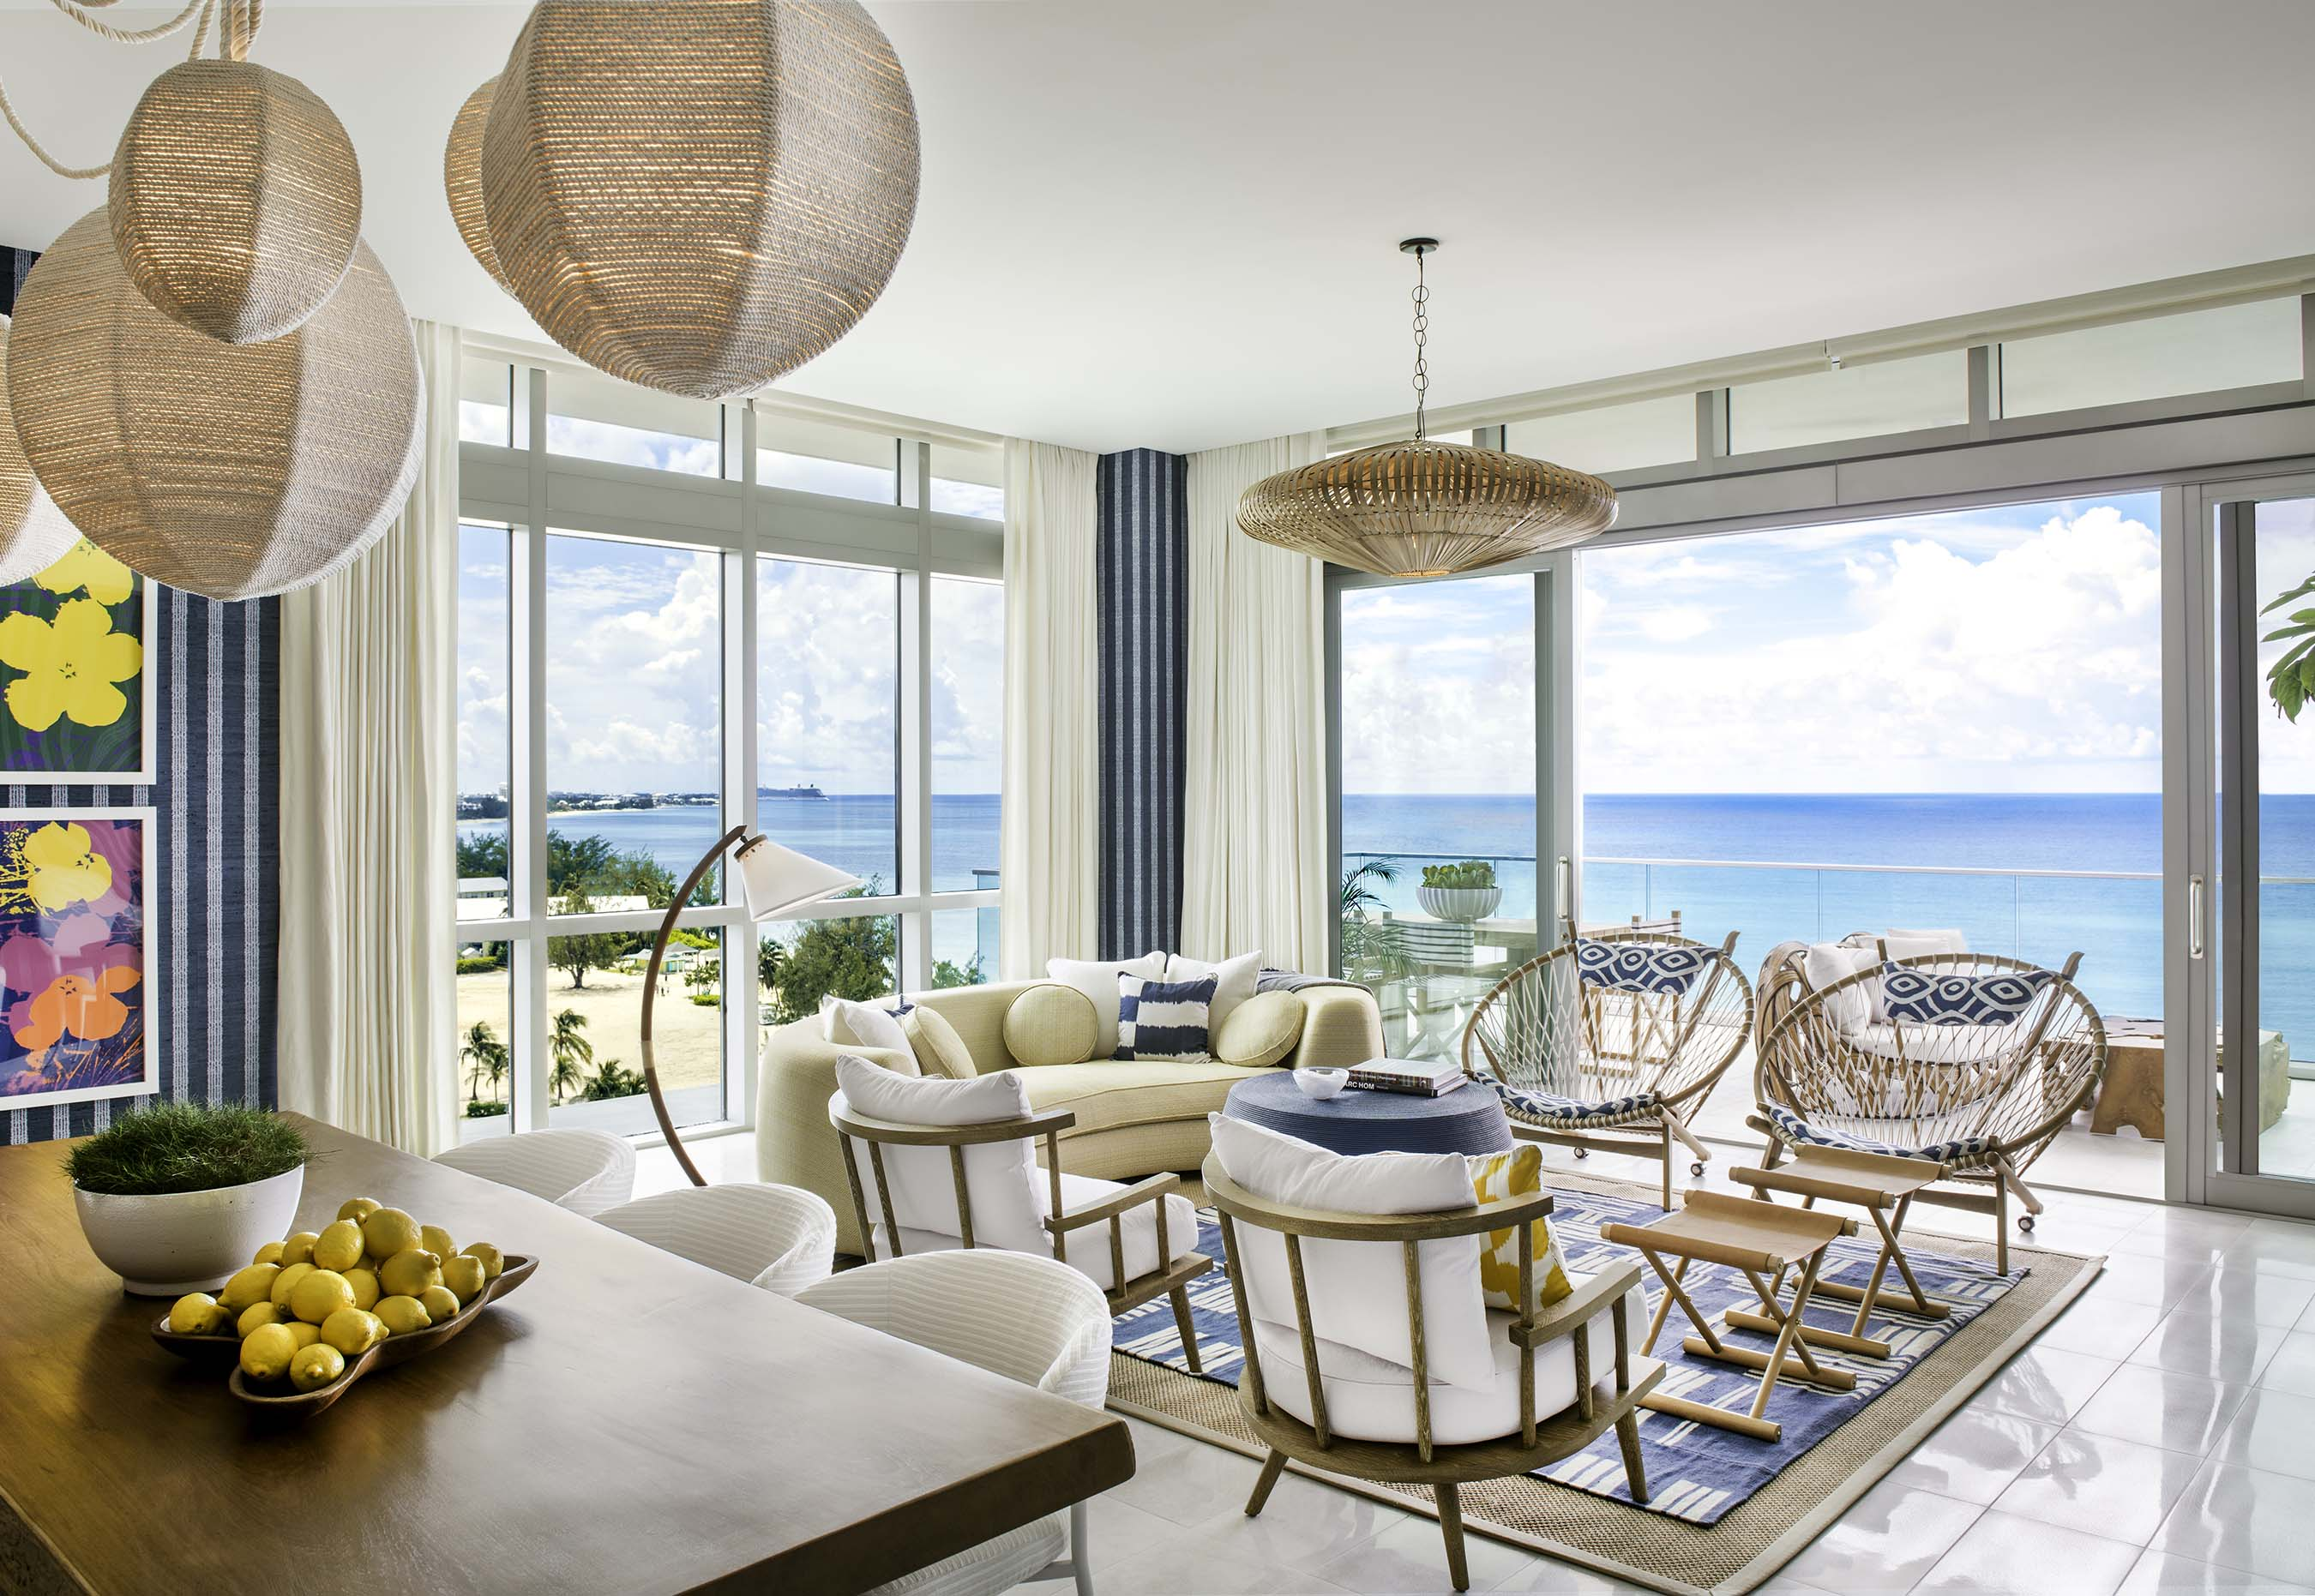 Discover Luxury Beachfront Living with The Residences at Seafire